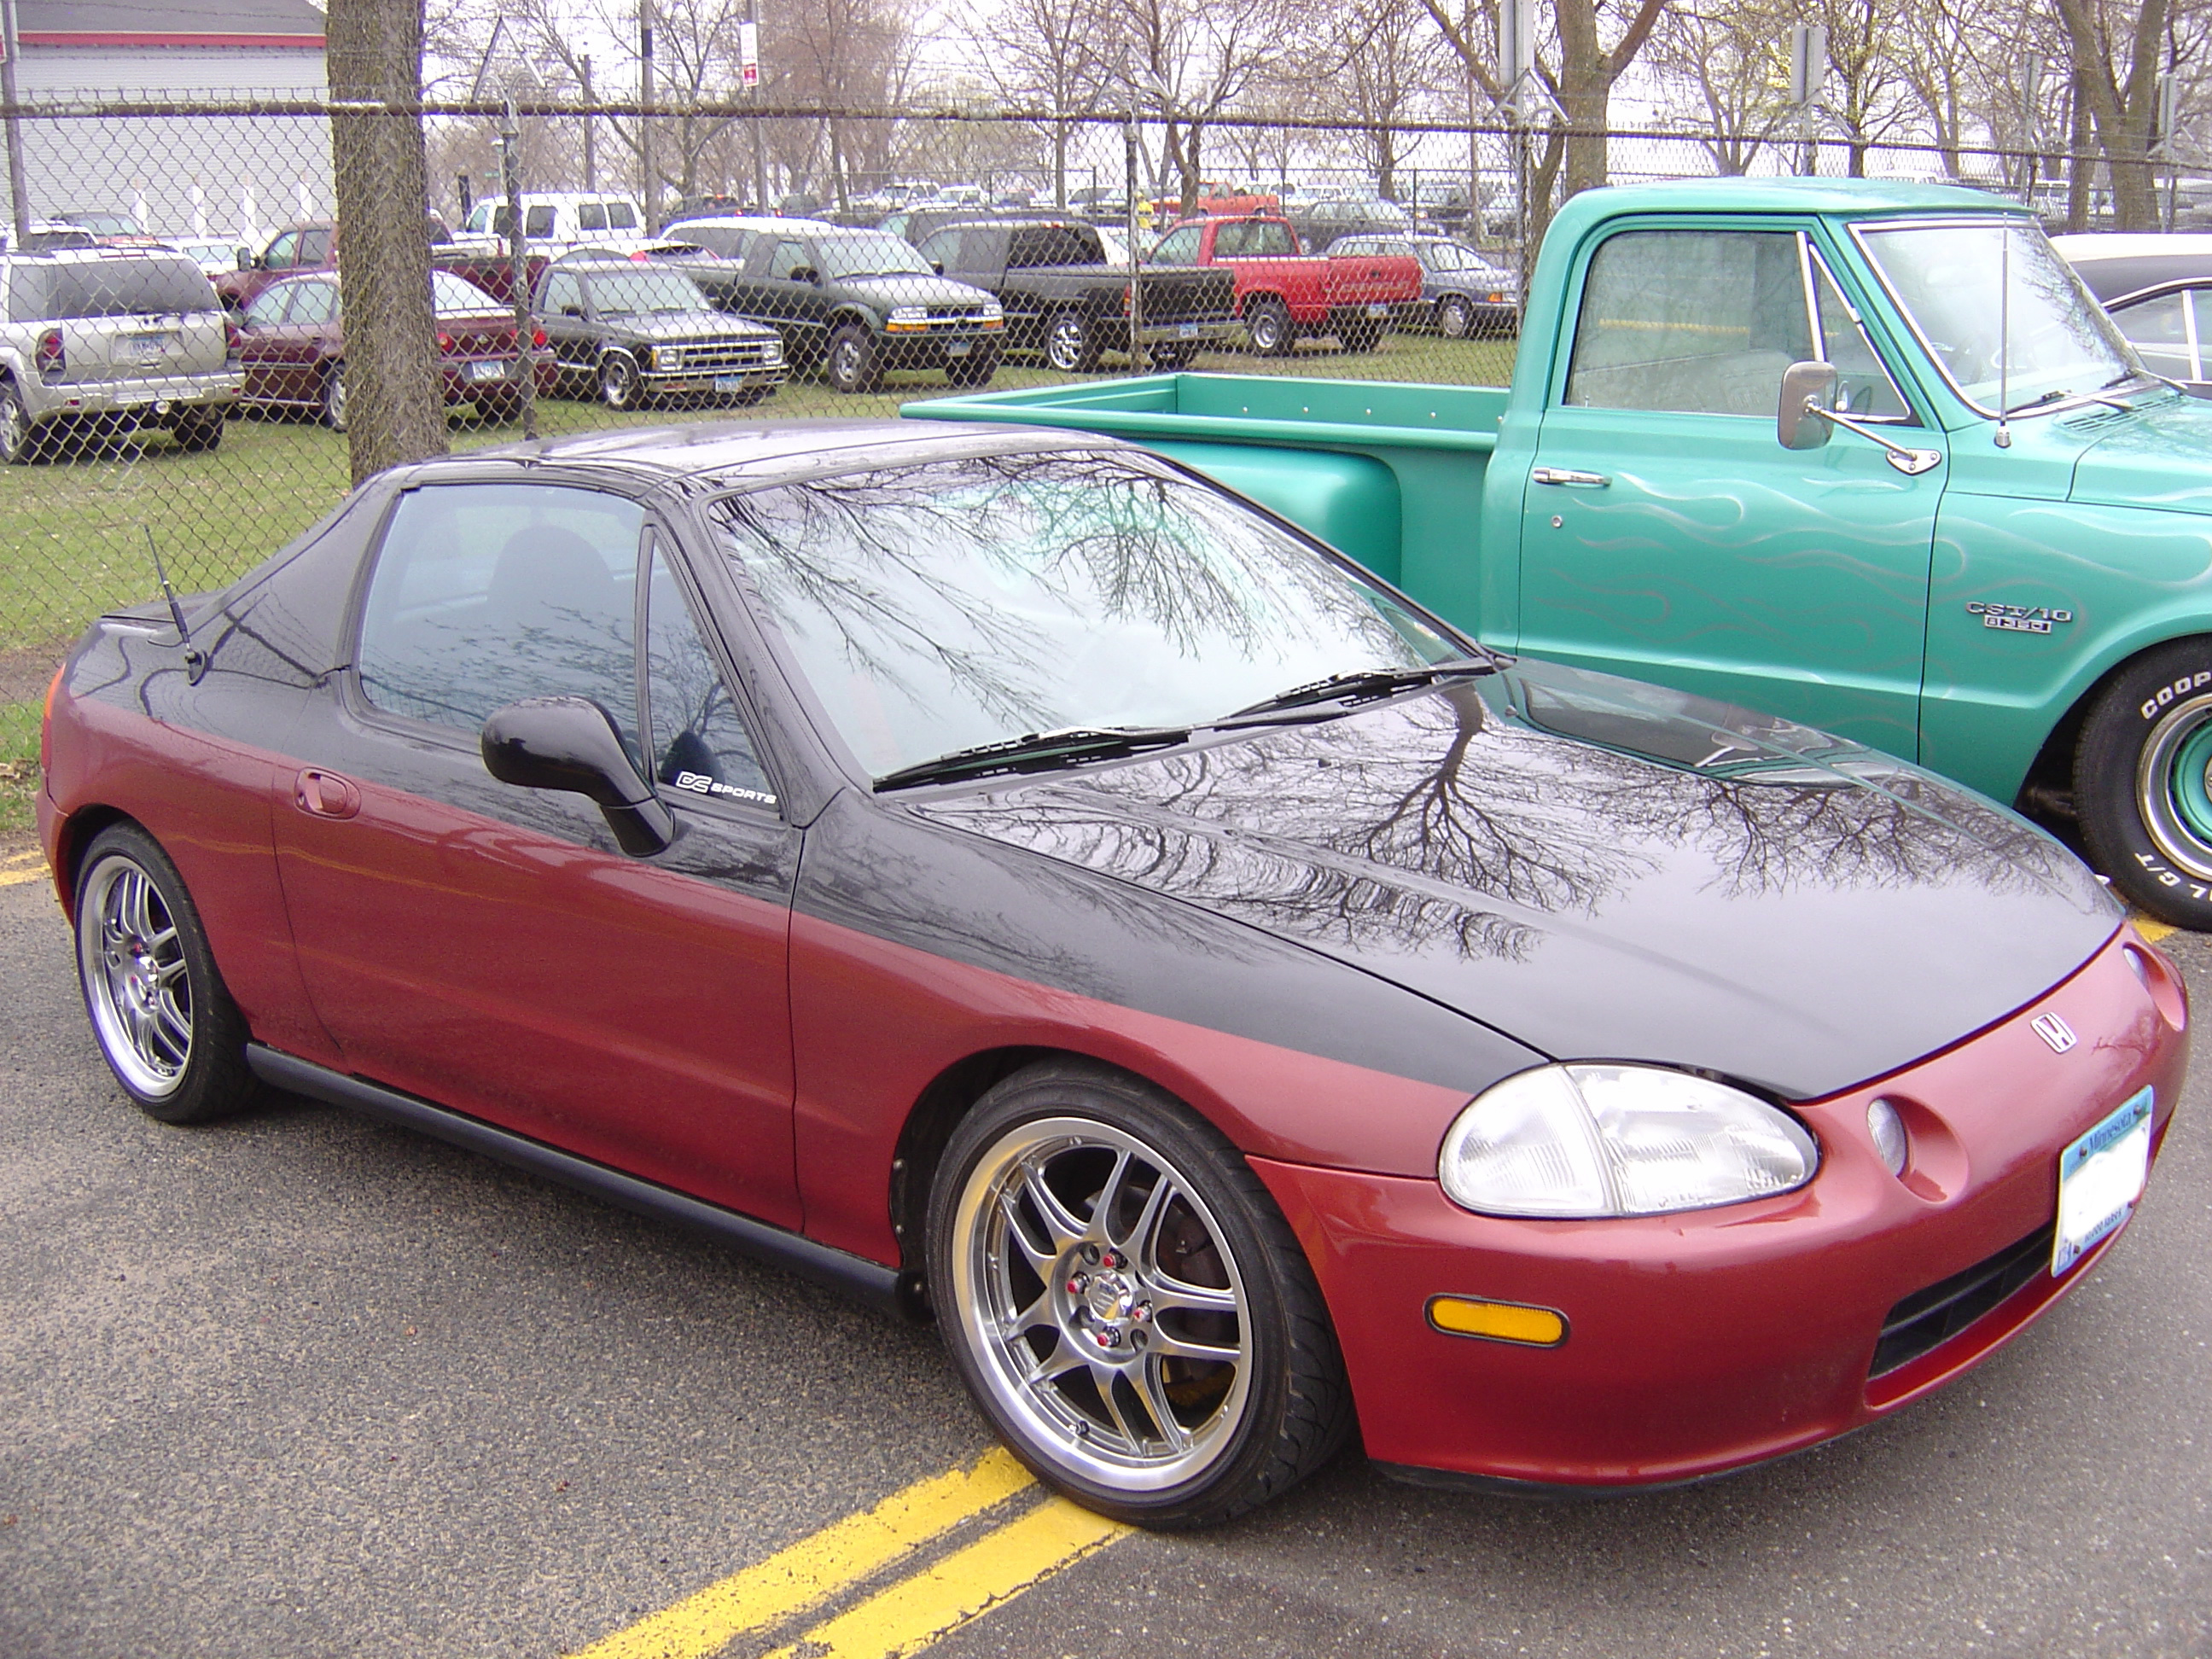 themach 5 39 s 1995 honda del sol si coupe 2d in mankato mn. Black Bedroom Furniture Sets. Home Design Ideas